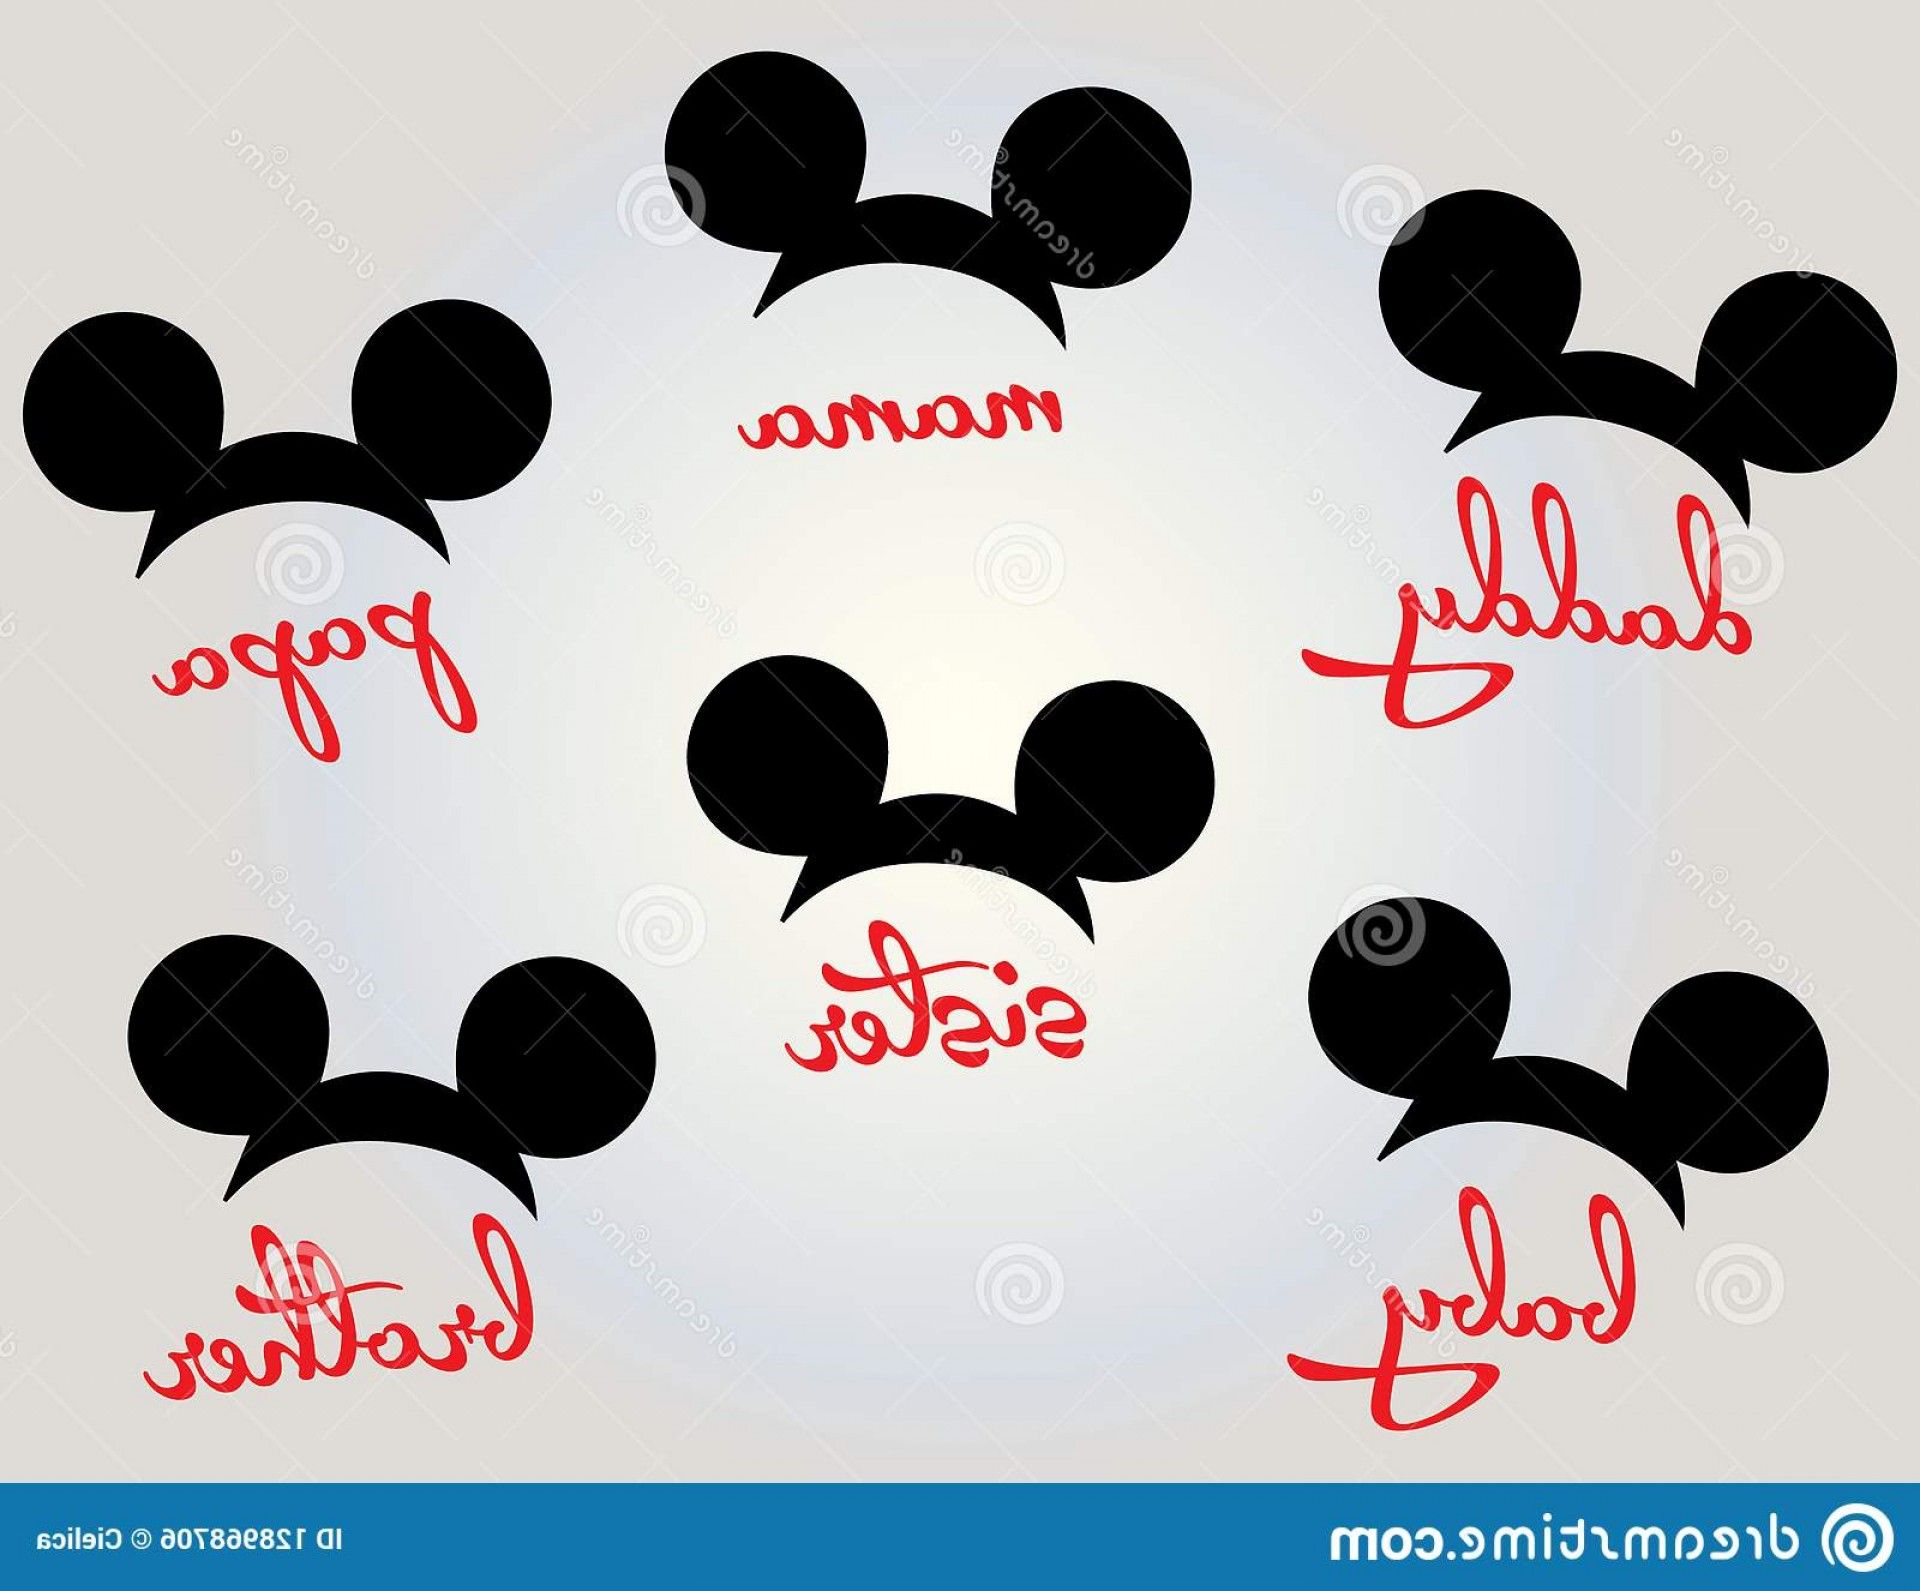 Minnie Mouse Head Vector: Mickey Mouse Minnie Head Family Vector Image Cutting File Plotters Eps Png Dxf Svg Animal Vectors Zigzag Chevro Image